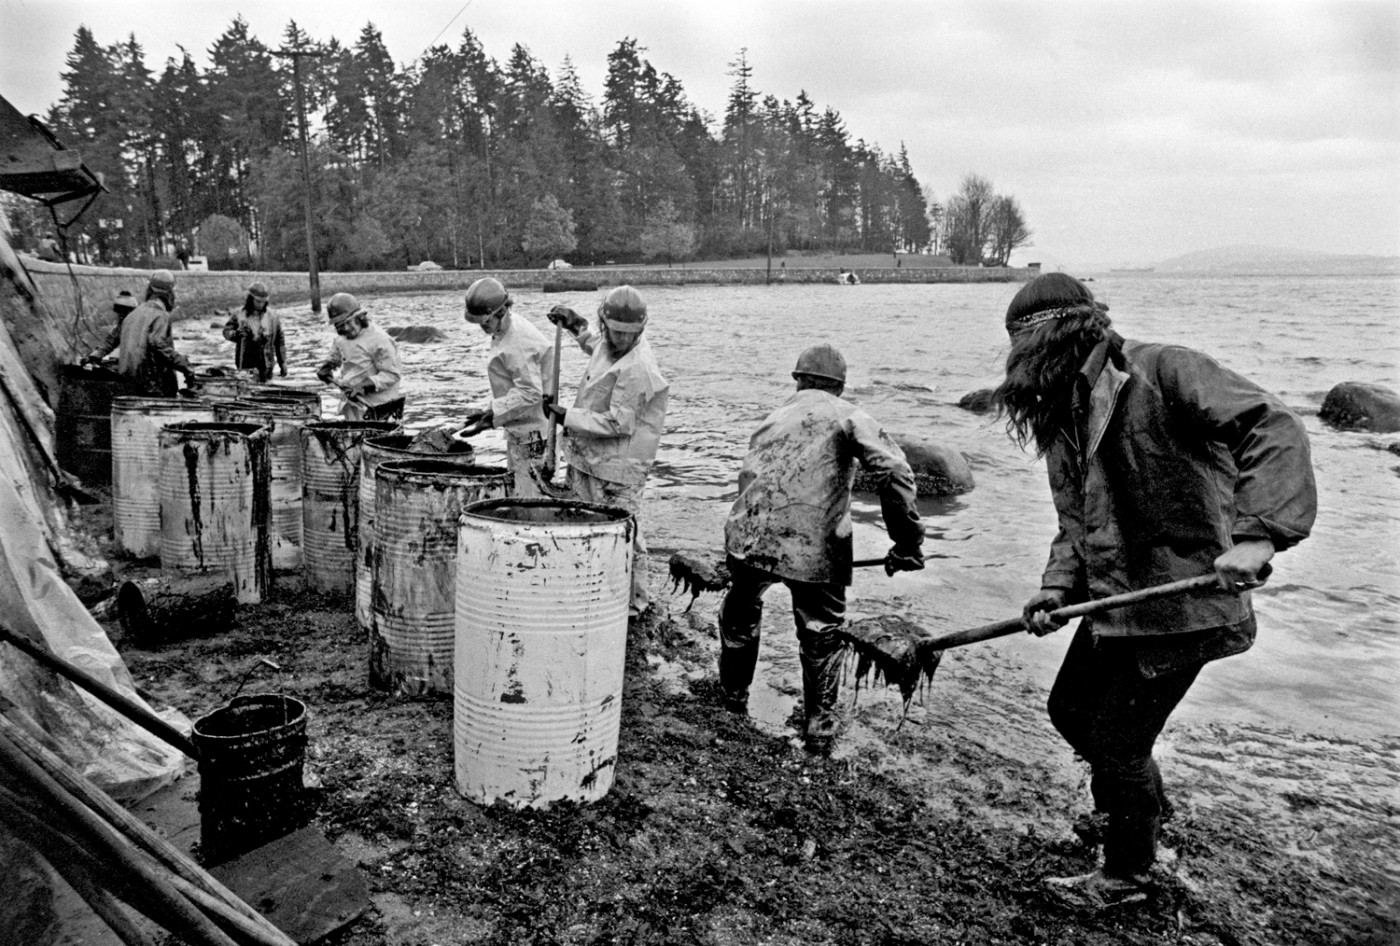 John Denniston, </span><span><em>Improvised oil-spill cleanup at Stanley Park</em>, </span><span>Vancouver, 1973